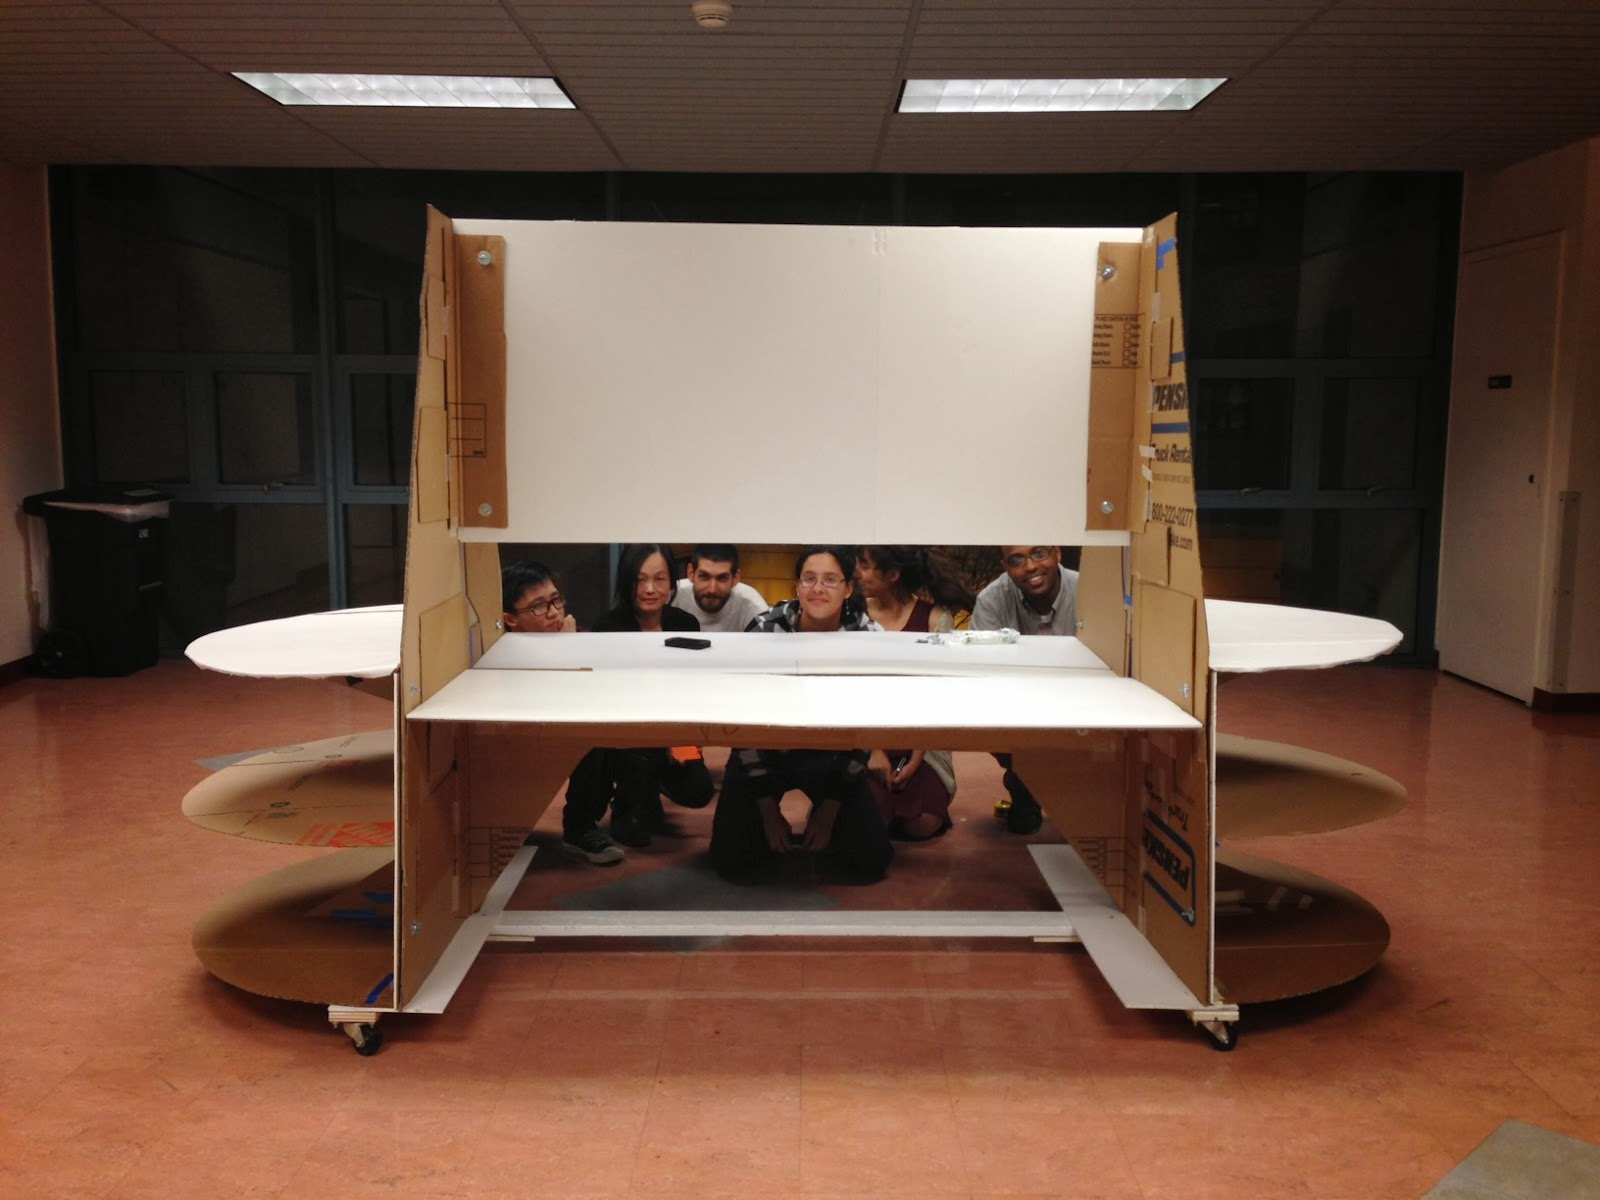 Image shows a frontal view of the full-scale cardboard prototype for the exhibit. Students kneel behind it and peer through the panel.